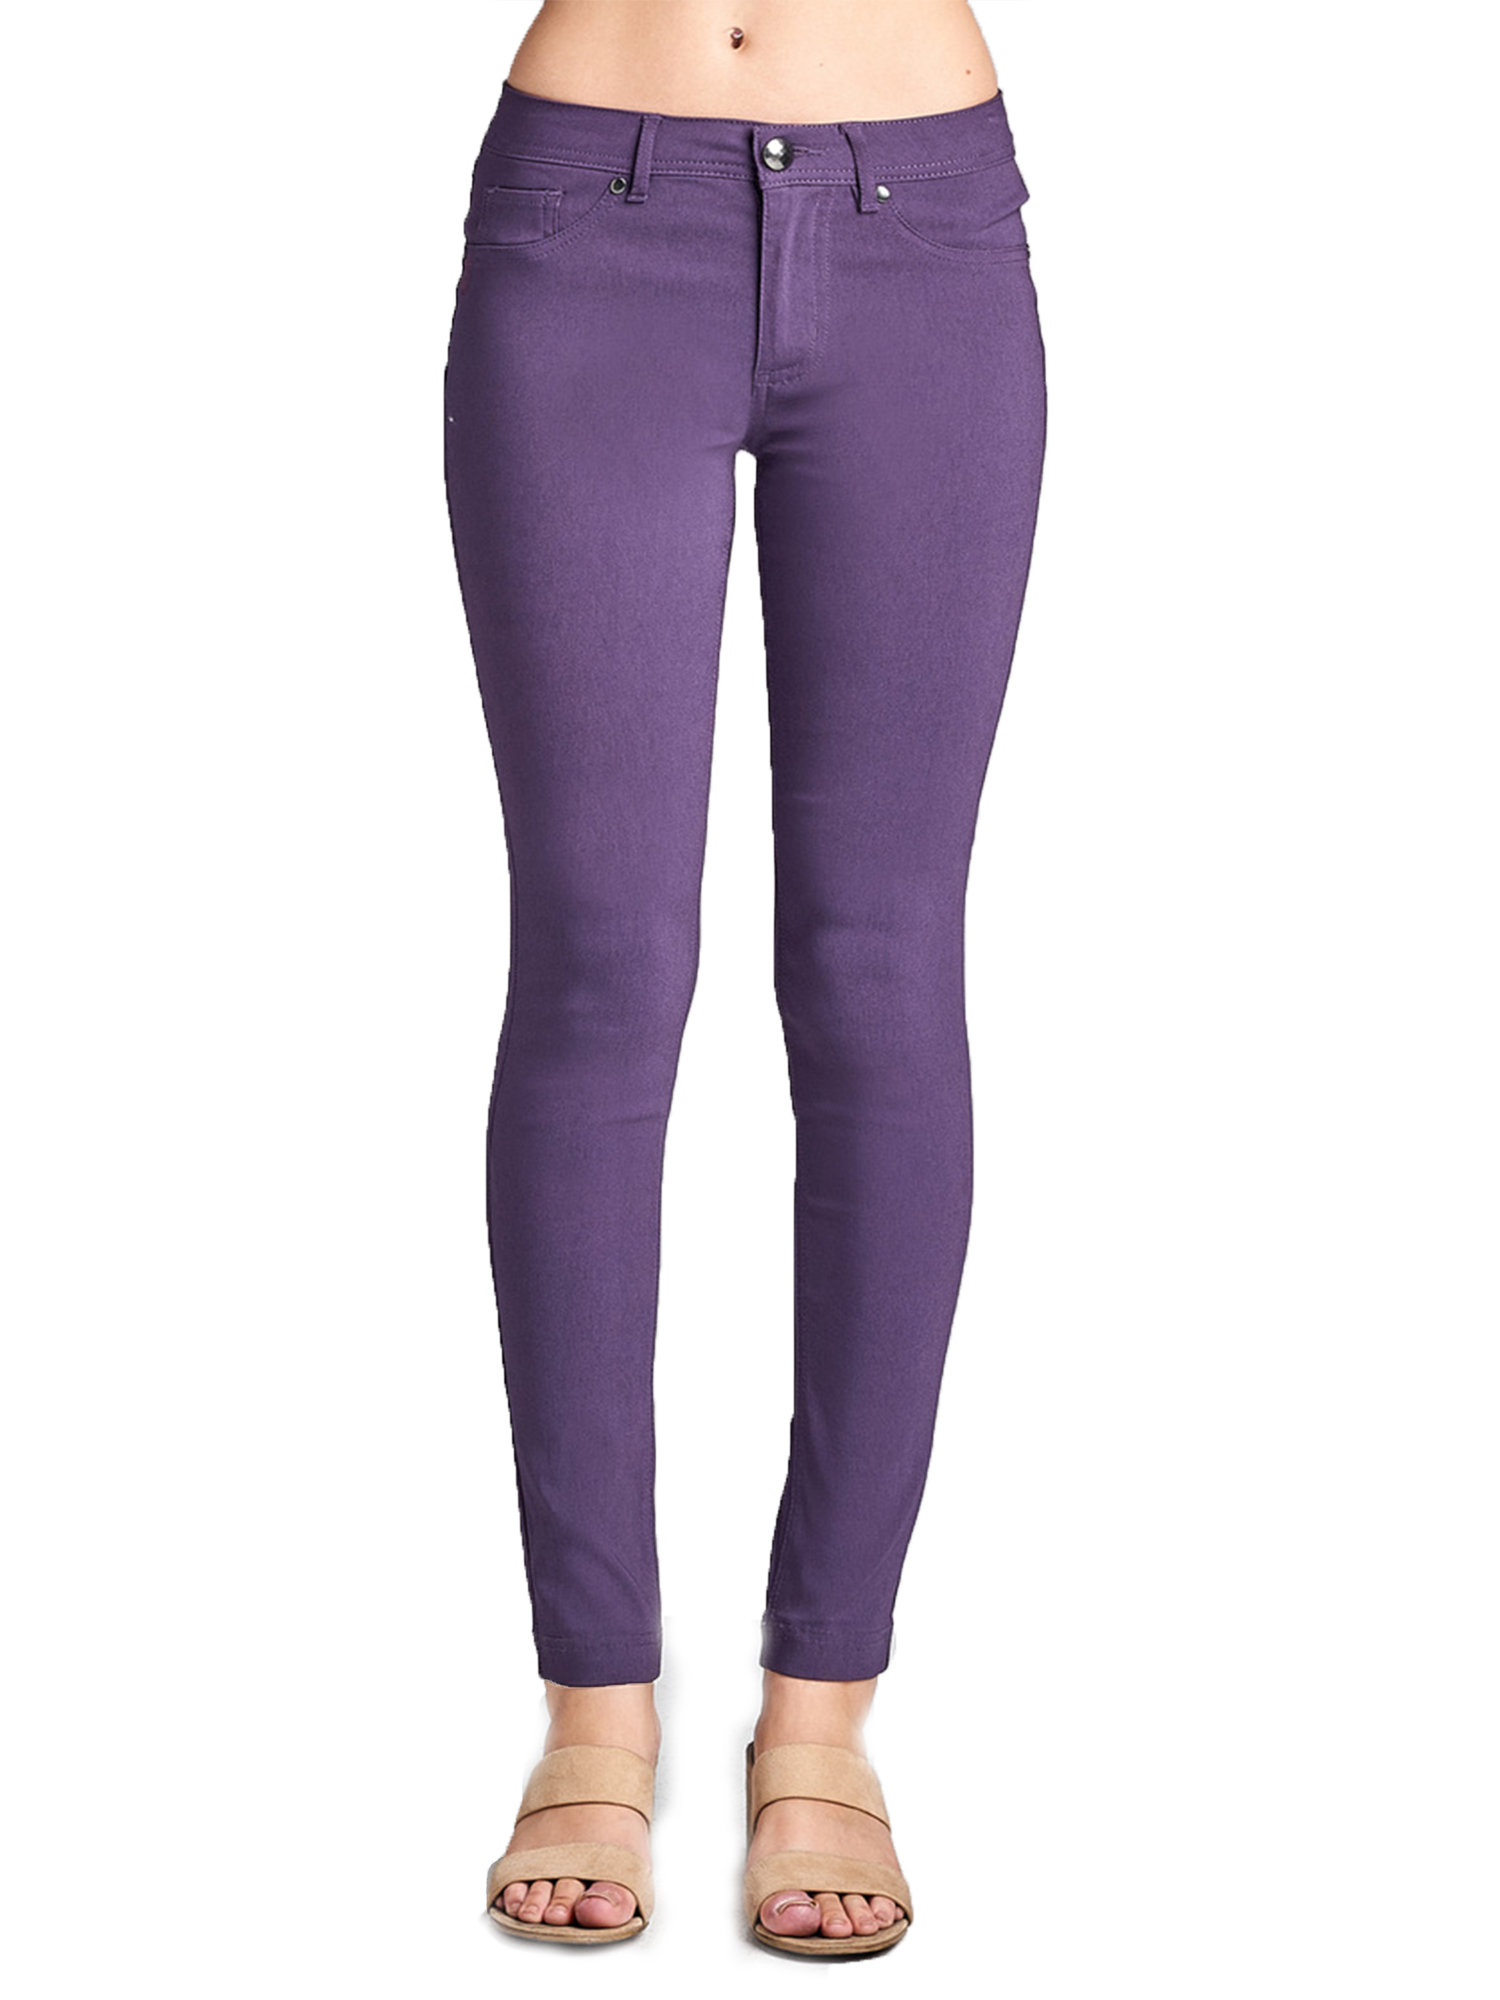 Emmalise Women's Basic Jean Look Jeggings Tights Spandex Skinny Leggings Bottoms